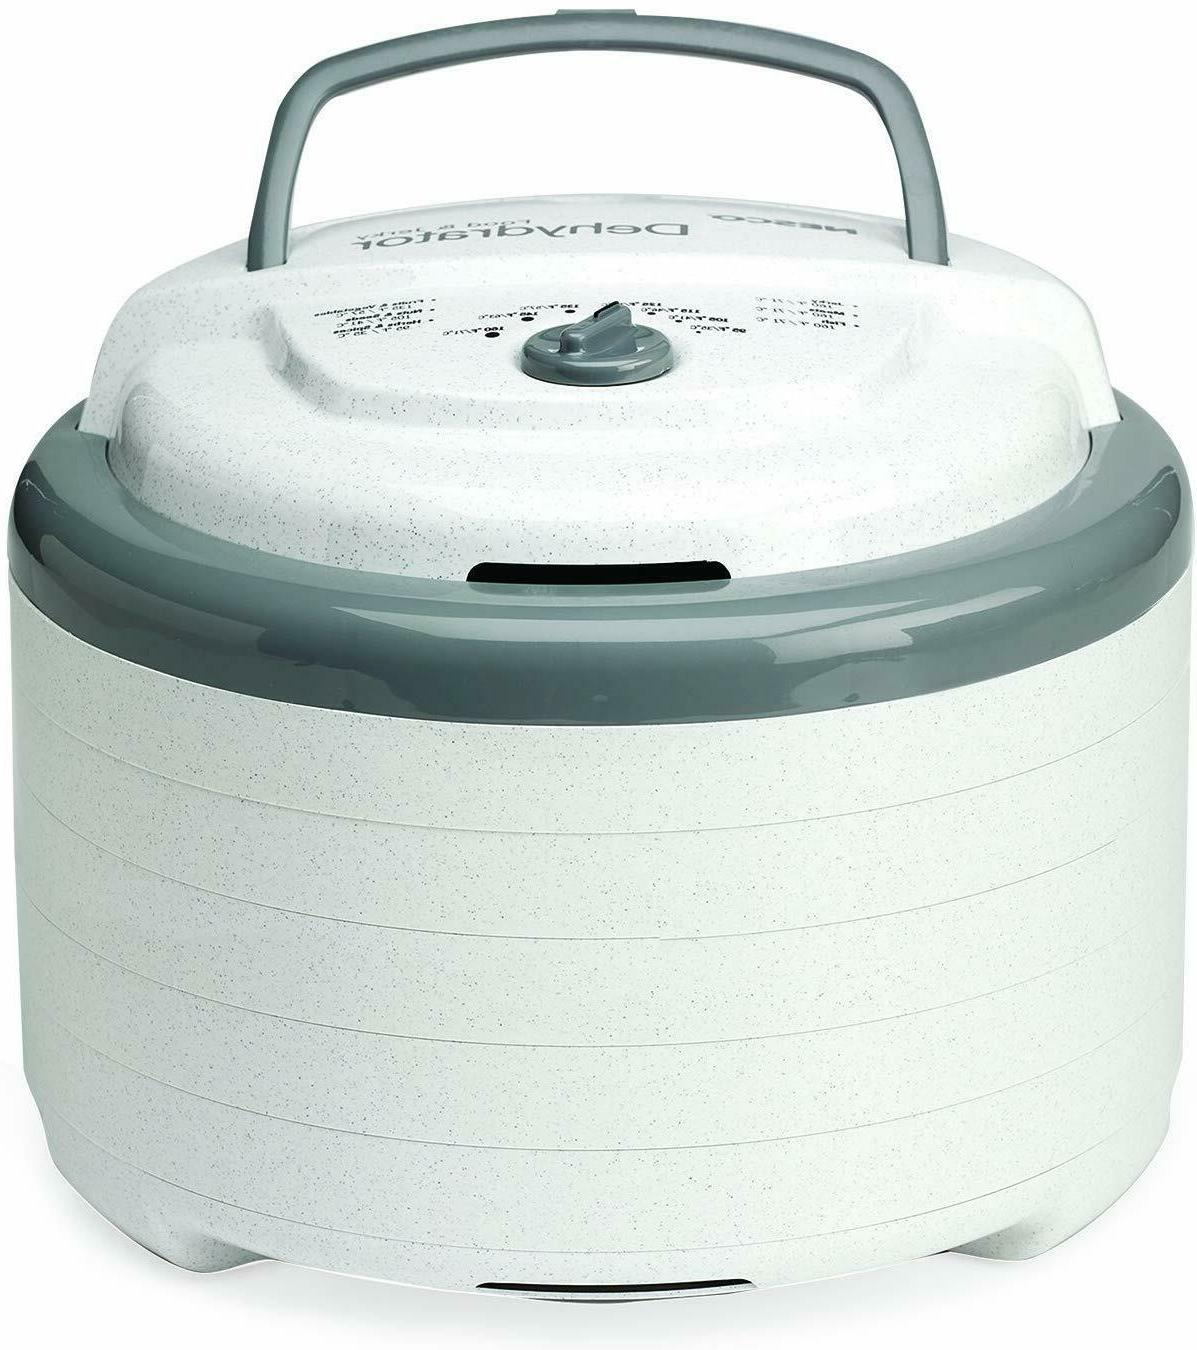 NESCO FD-75A, Snackmaster Pro Food Dehydrator, Speckled